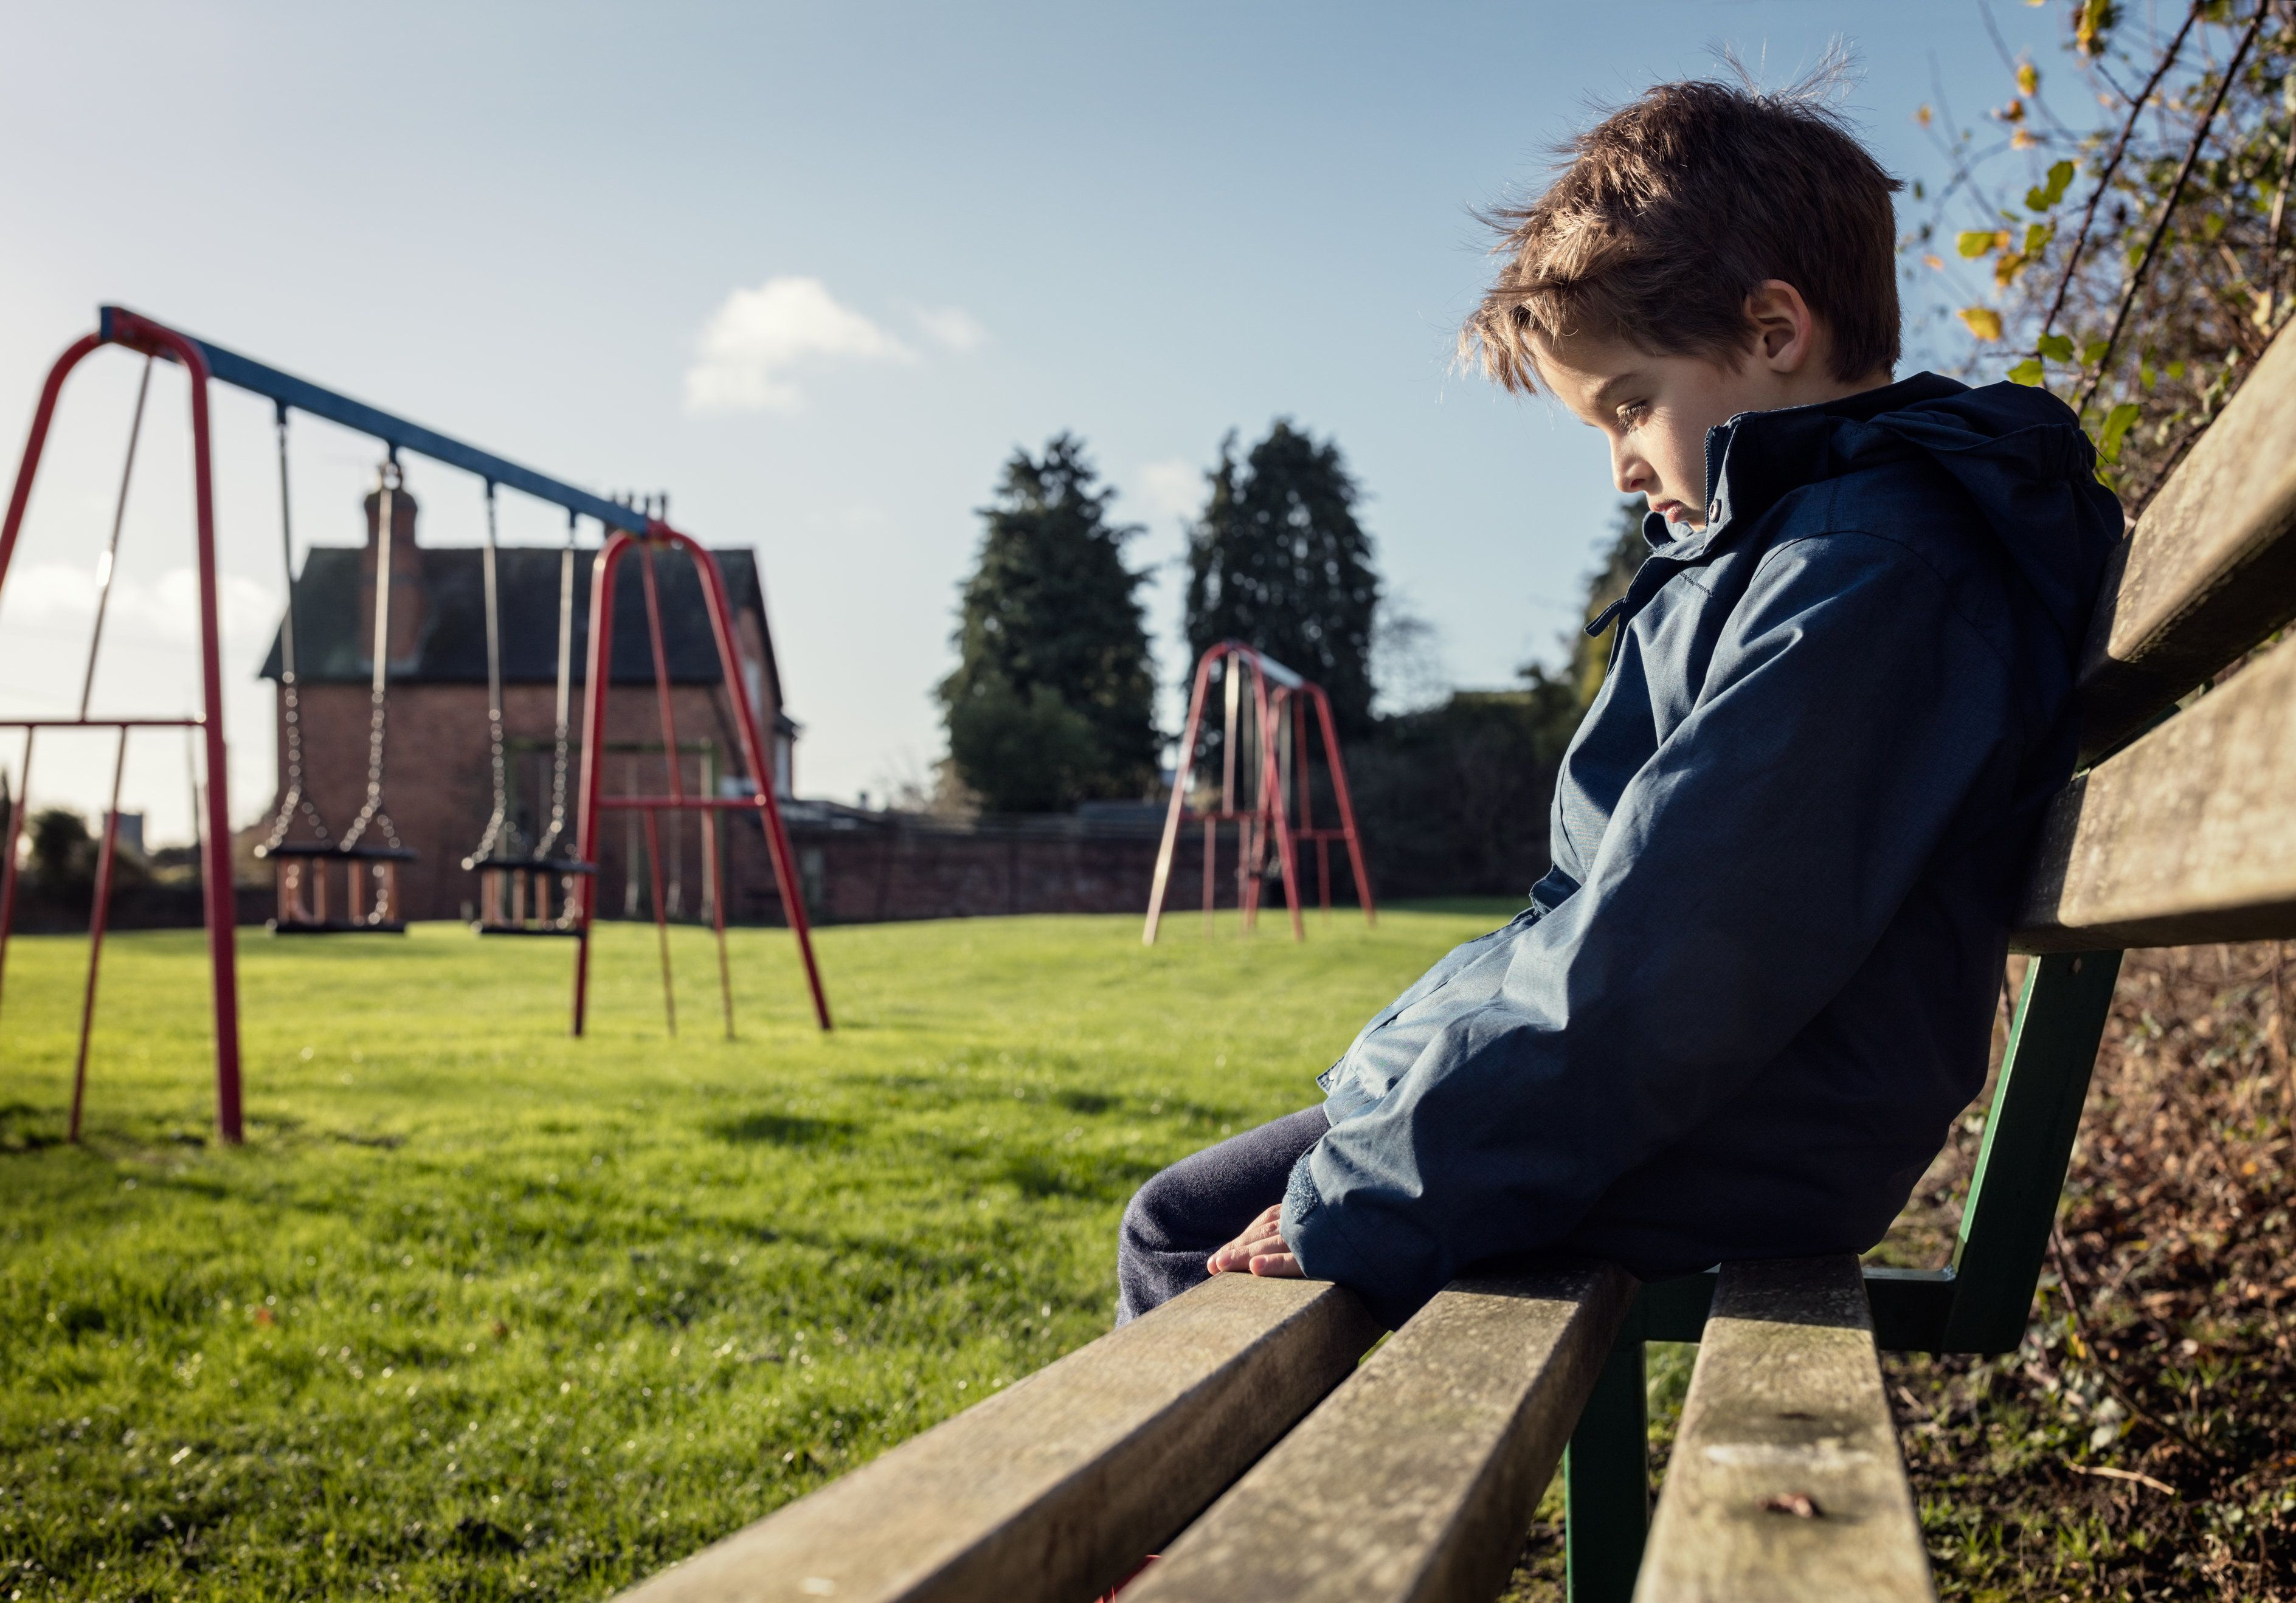 8 Steps For Parents Who Are Worried Their Child Is Lonely